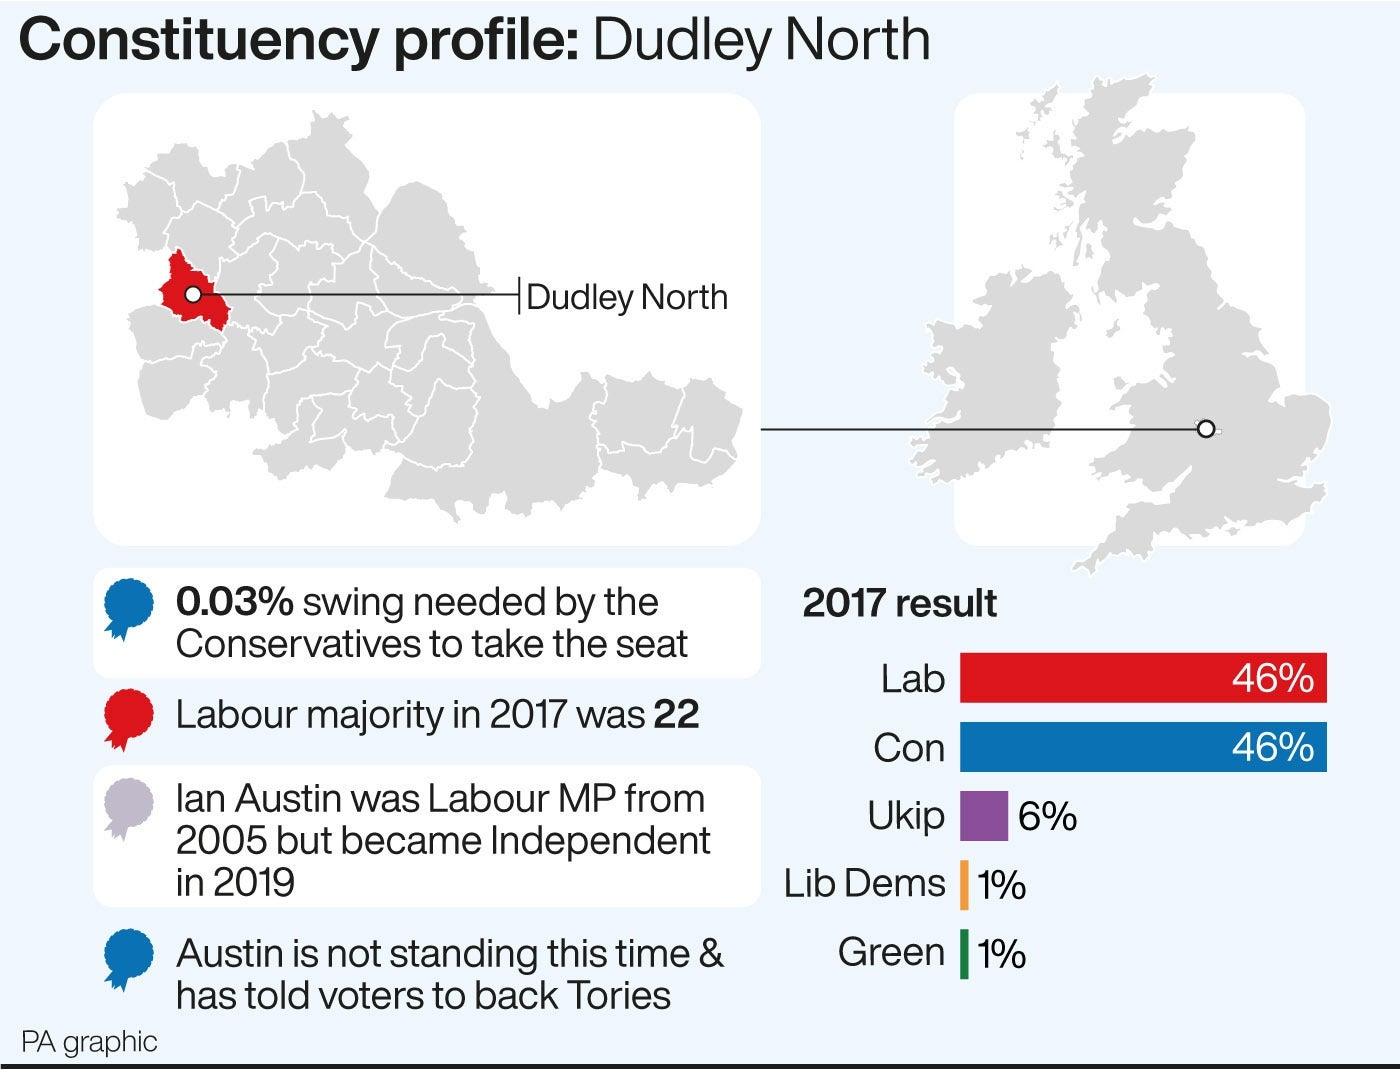 Dudley North